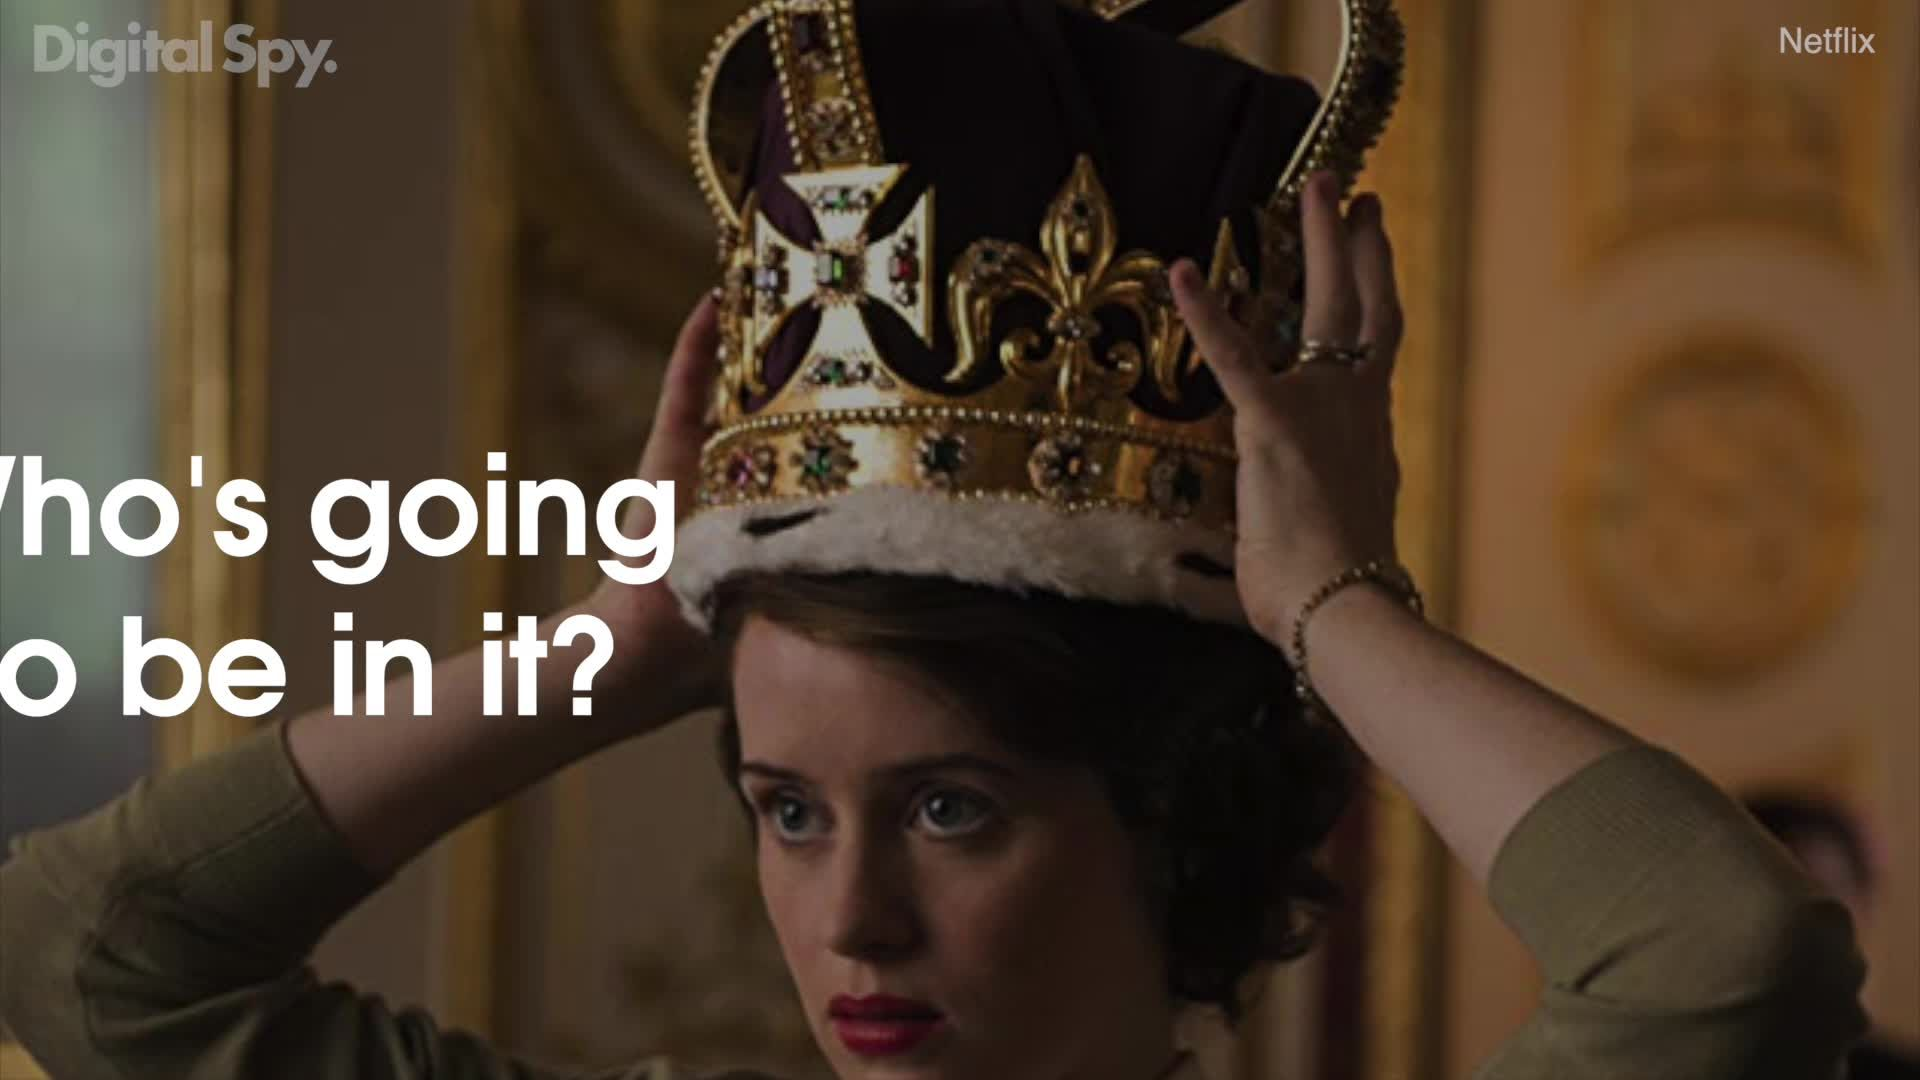 The Crown season 3 on Netflix: Release date, cast, plot and everything you need to know